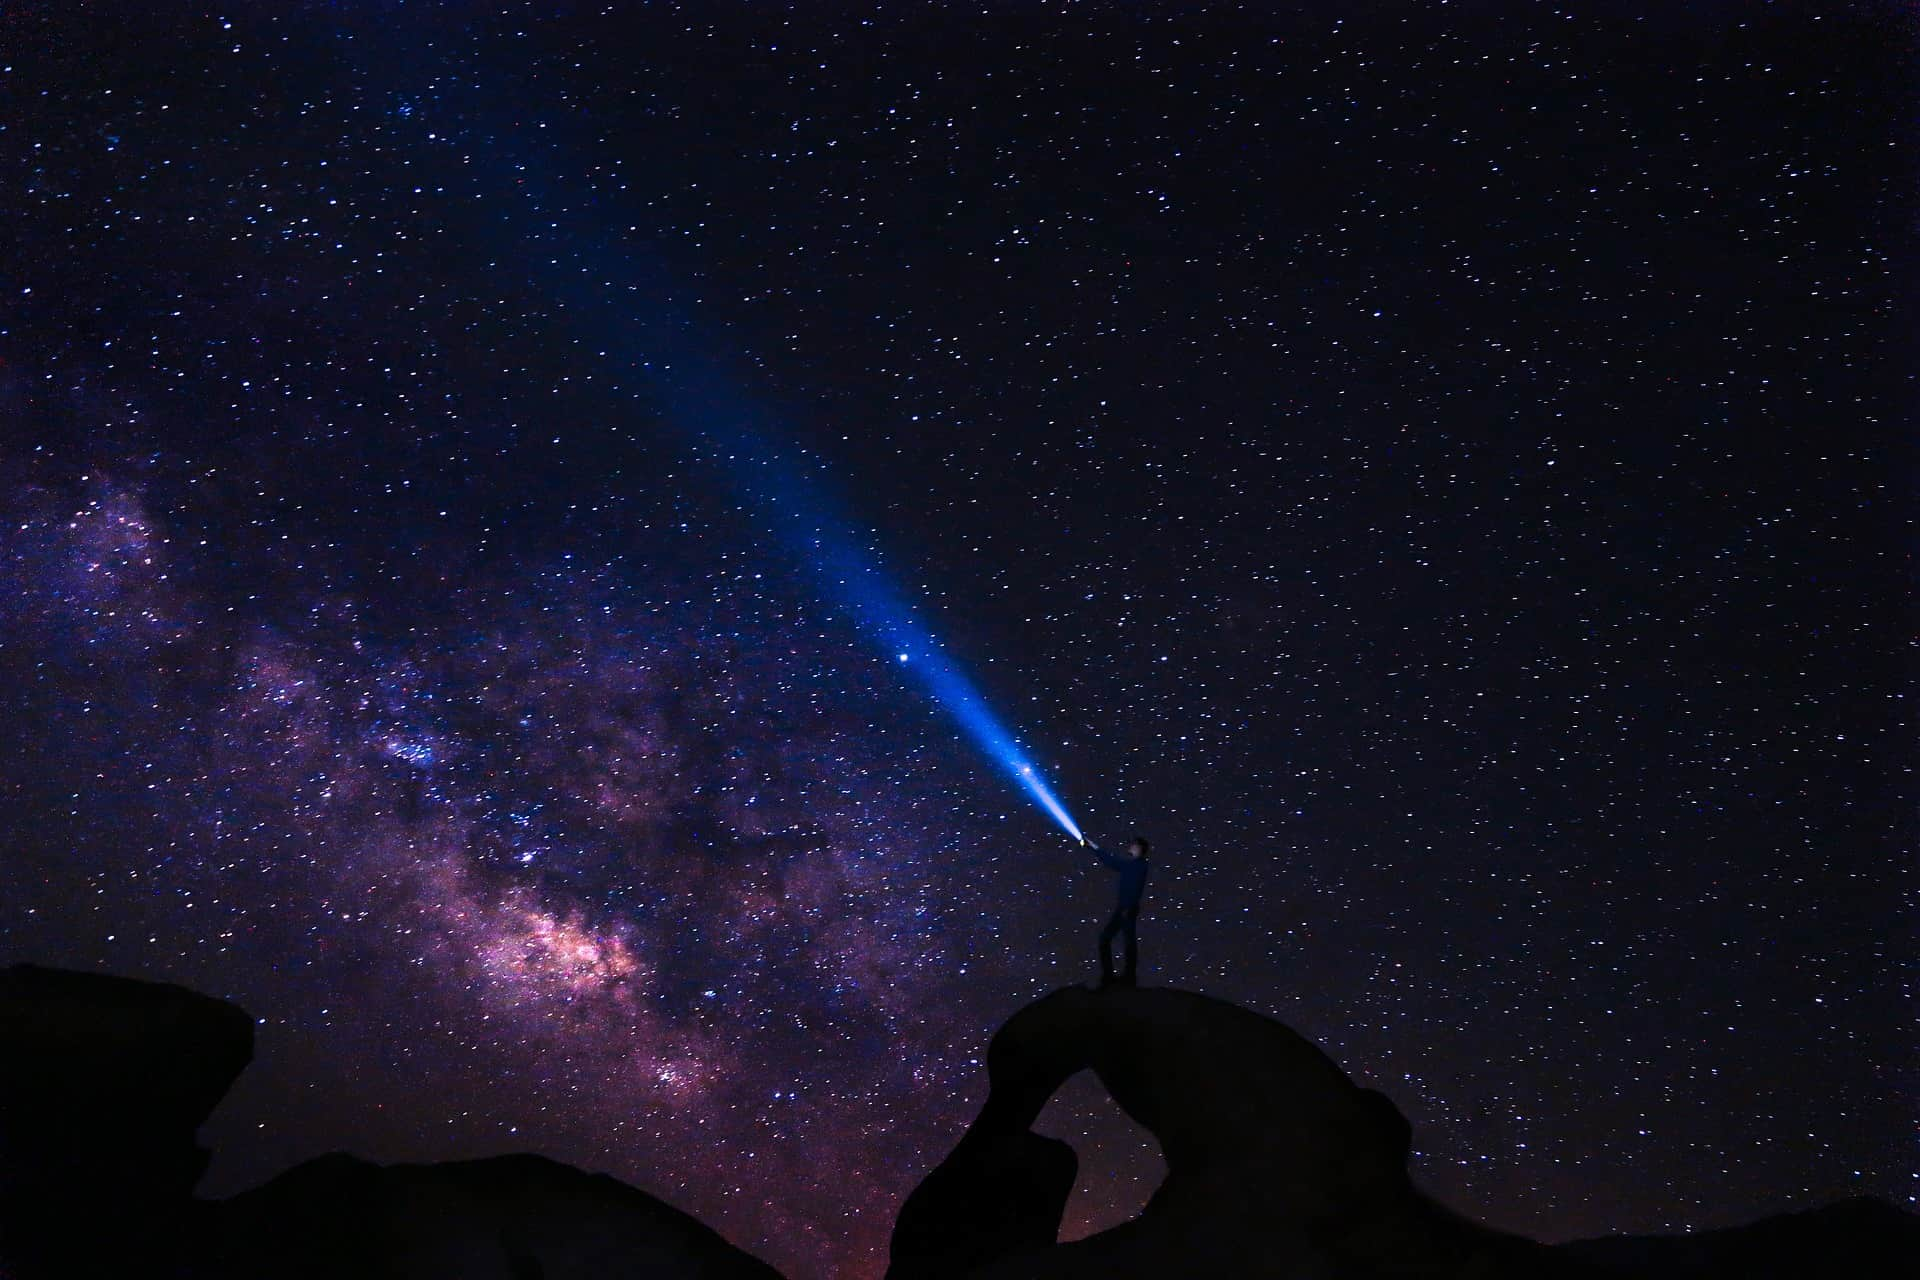 guy standing on a hill trying to see the galaxy